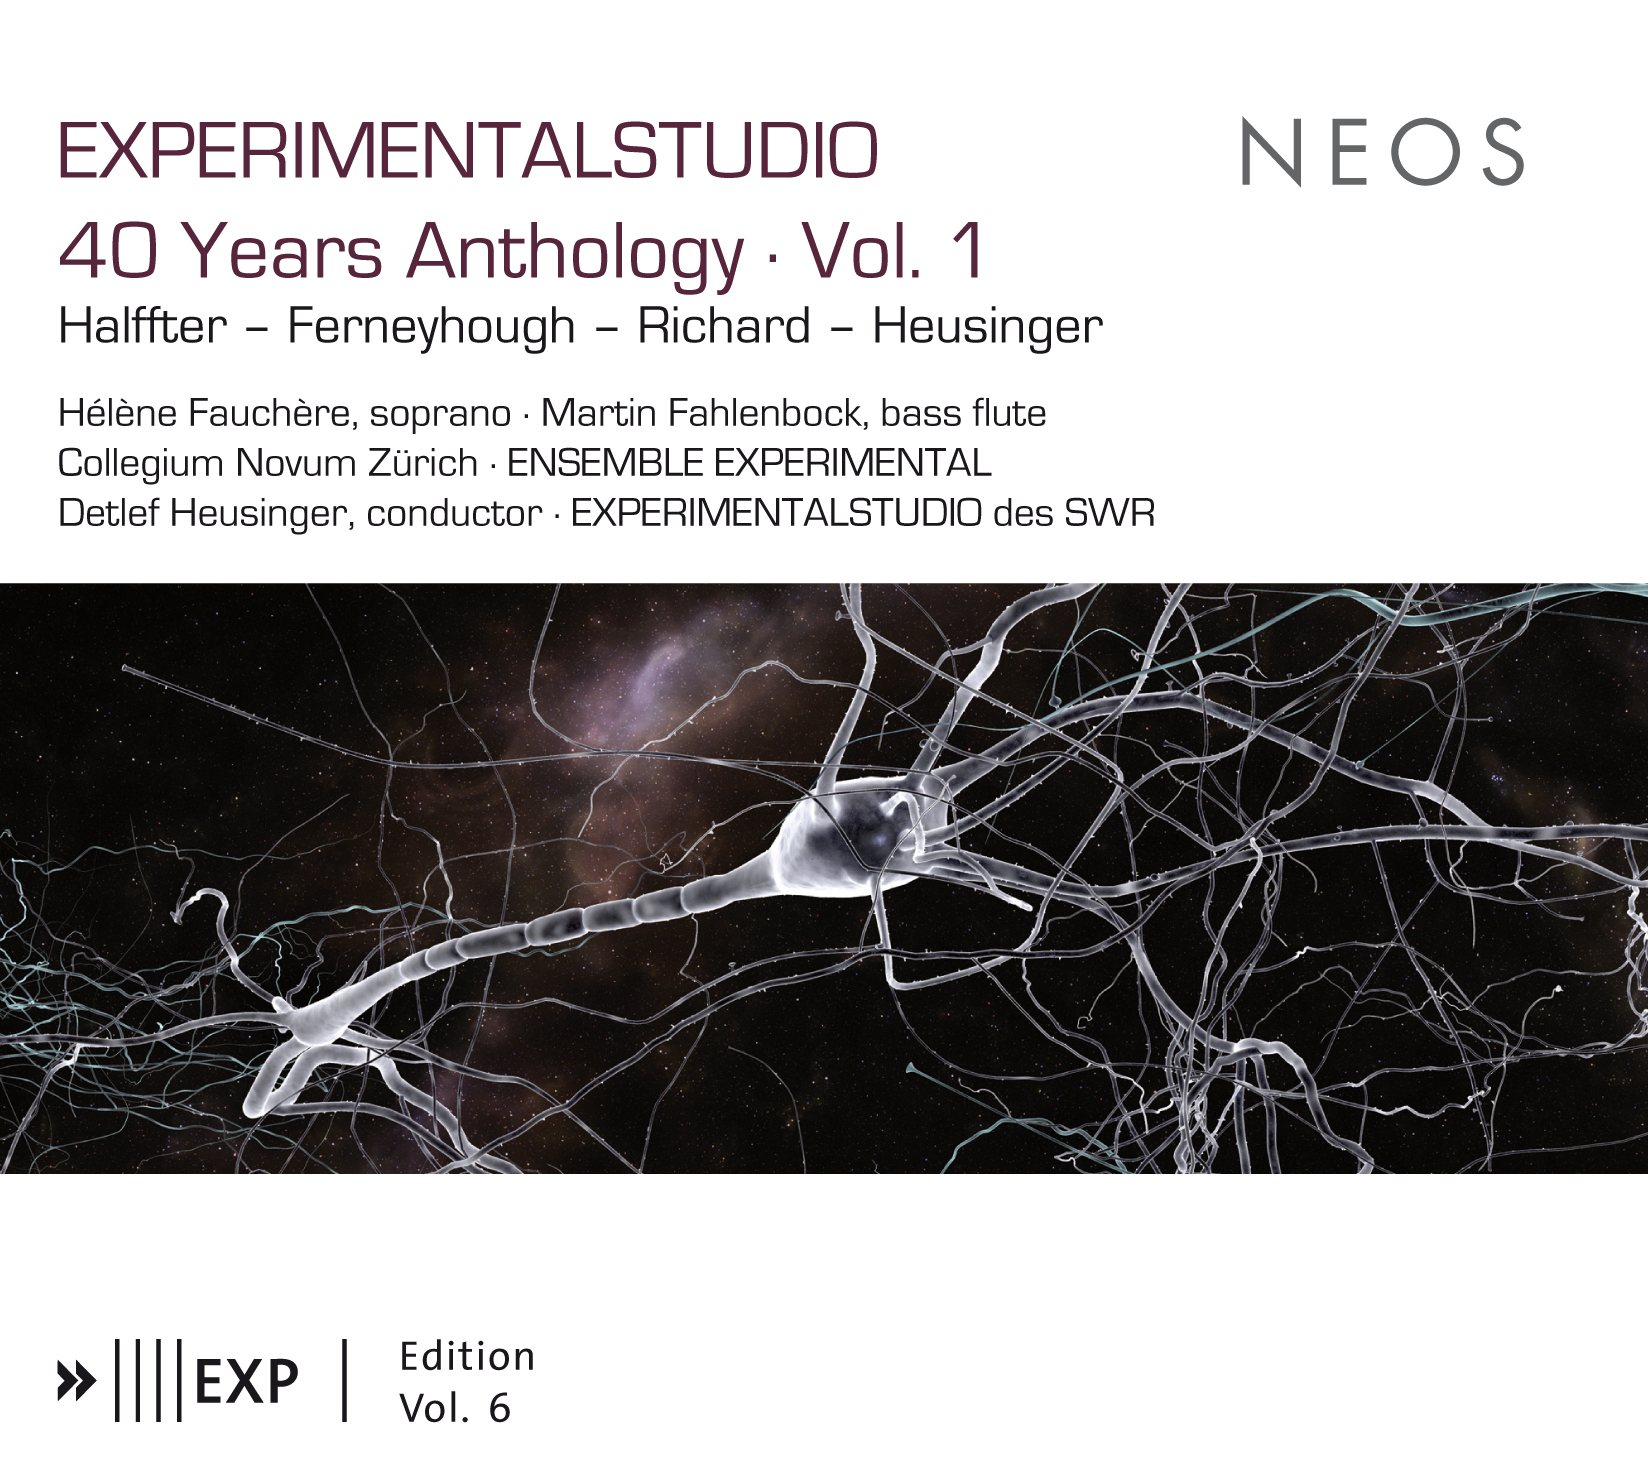 01_NEOS_11515_EXStudio_40_Years_1